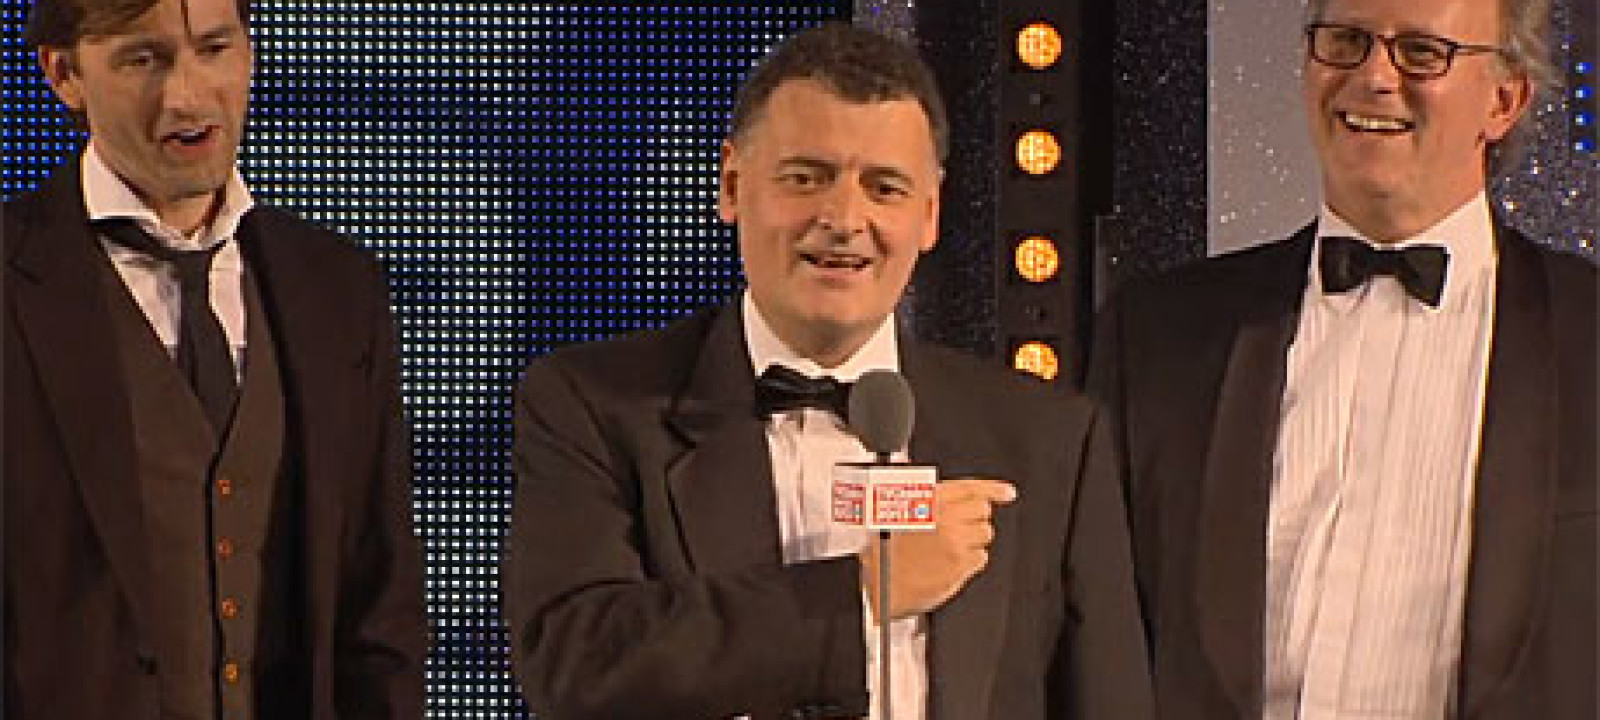 David Tennant, Steven Moffat and Peter Davison